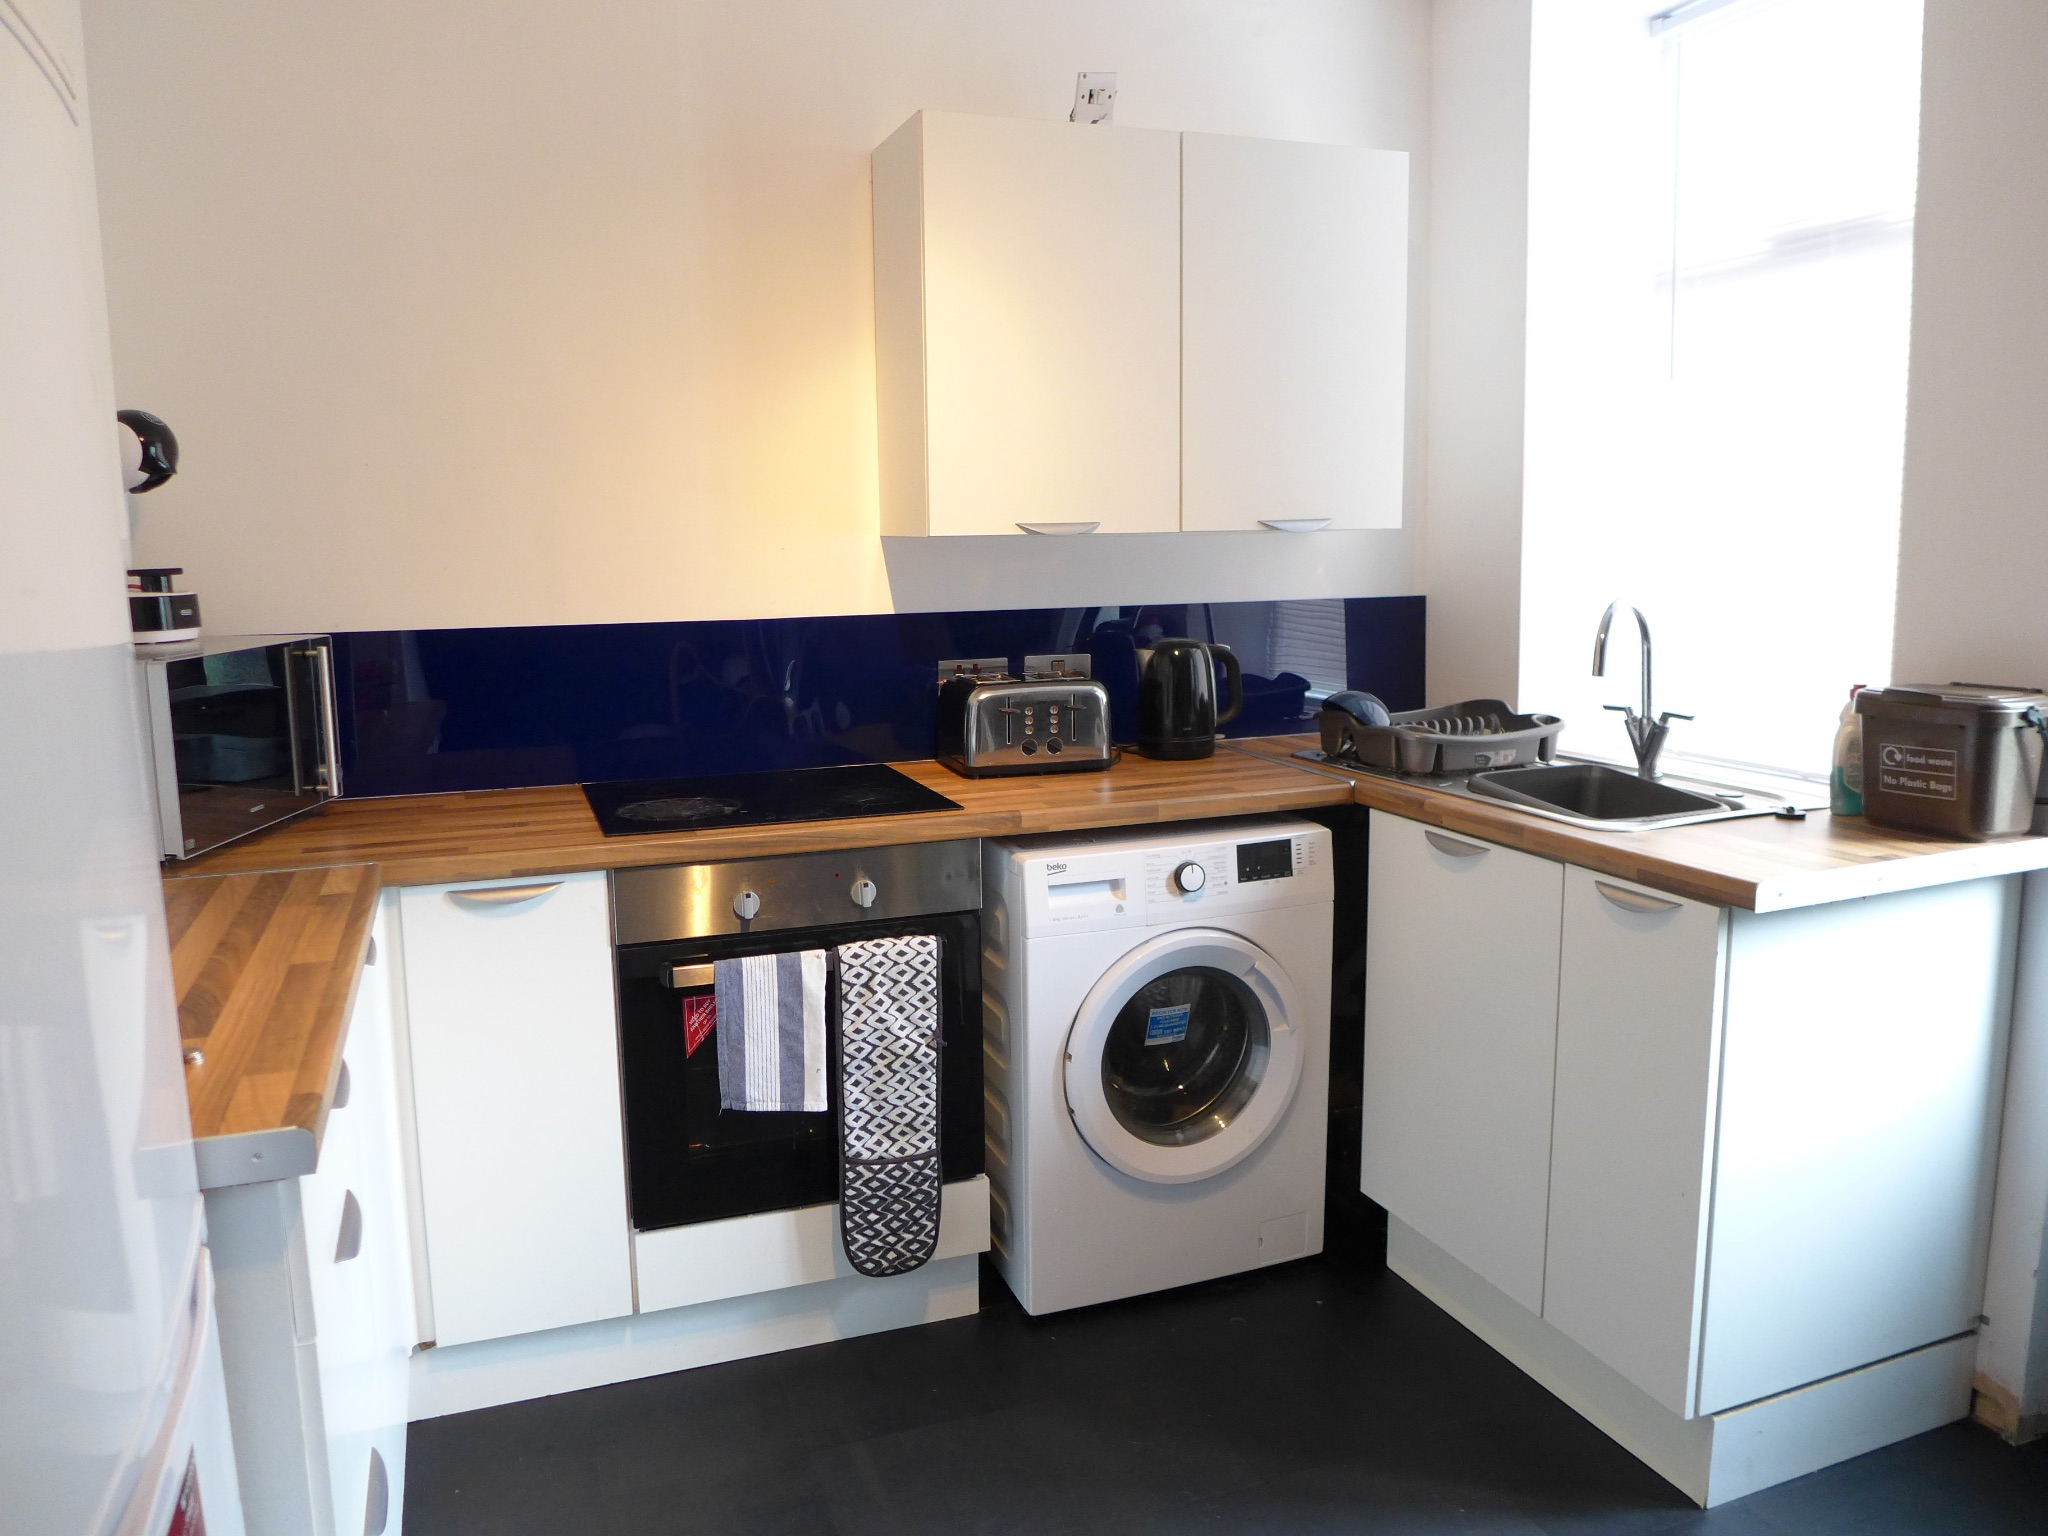 3 bedroom end terraced house For Sale in Todmorden - Photograph 5.